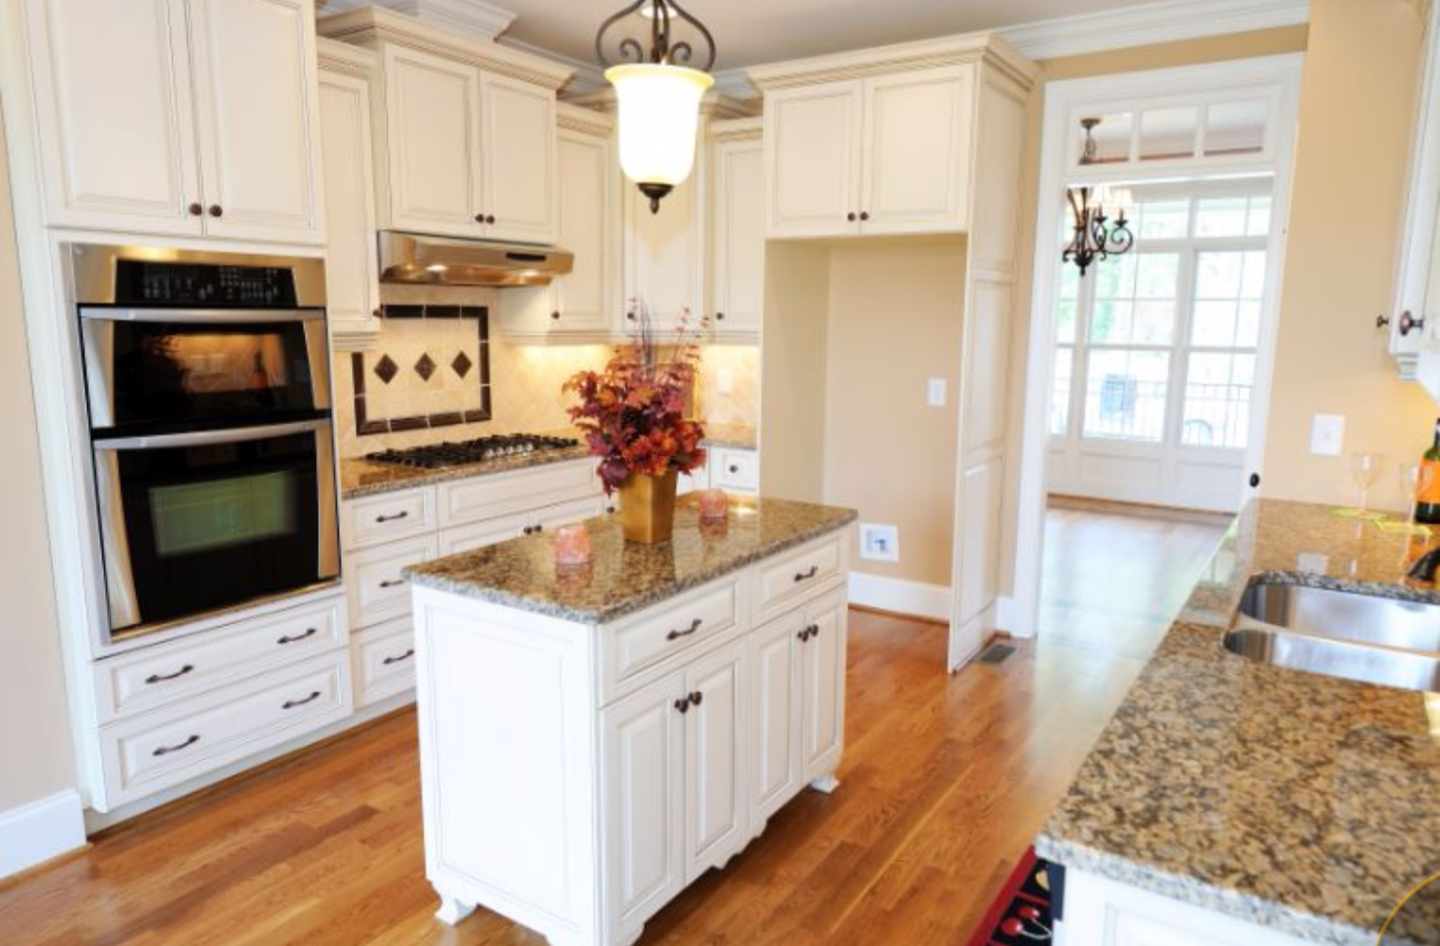 Painting Kitchen Cabinets And Cabinet Refinishing Denver Painting - Kitchen cabinet painters near me